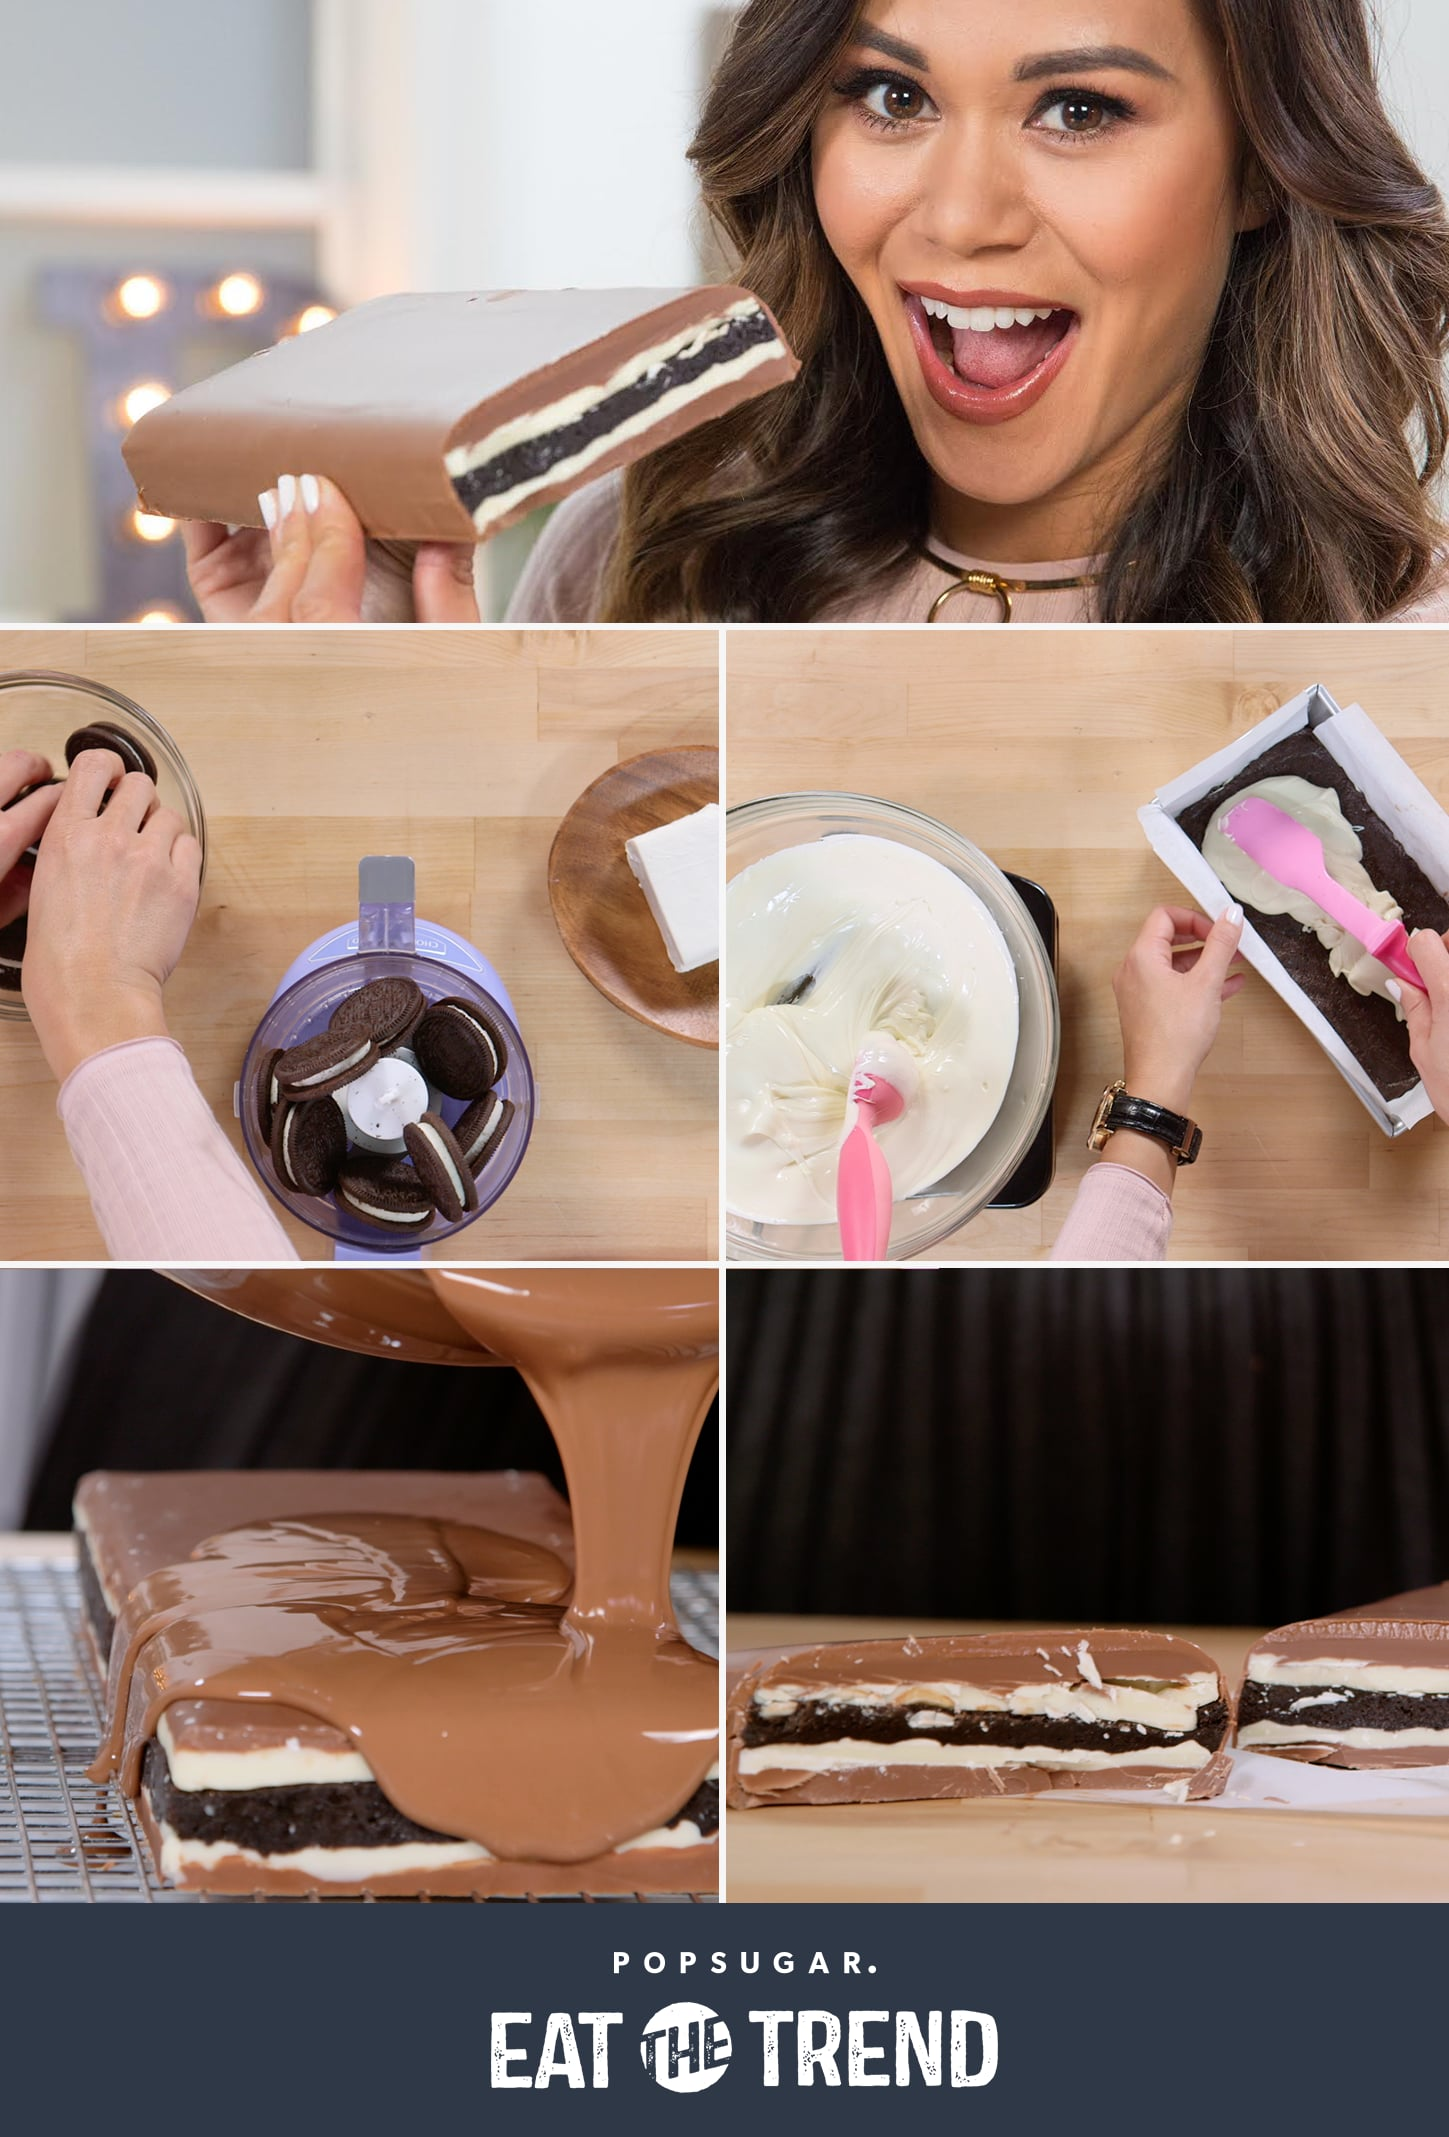 This Giant DIY Oreo Chocolate Bar Is the Stuff Dreams Are Made Of